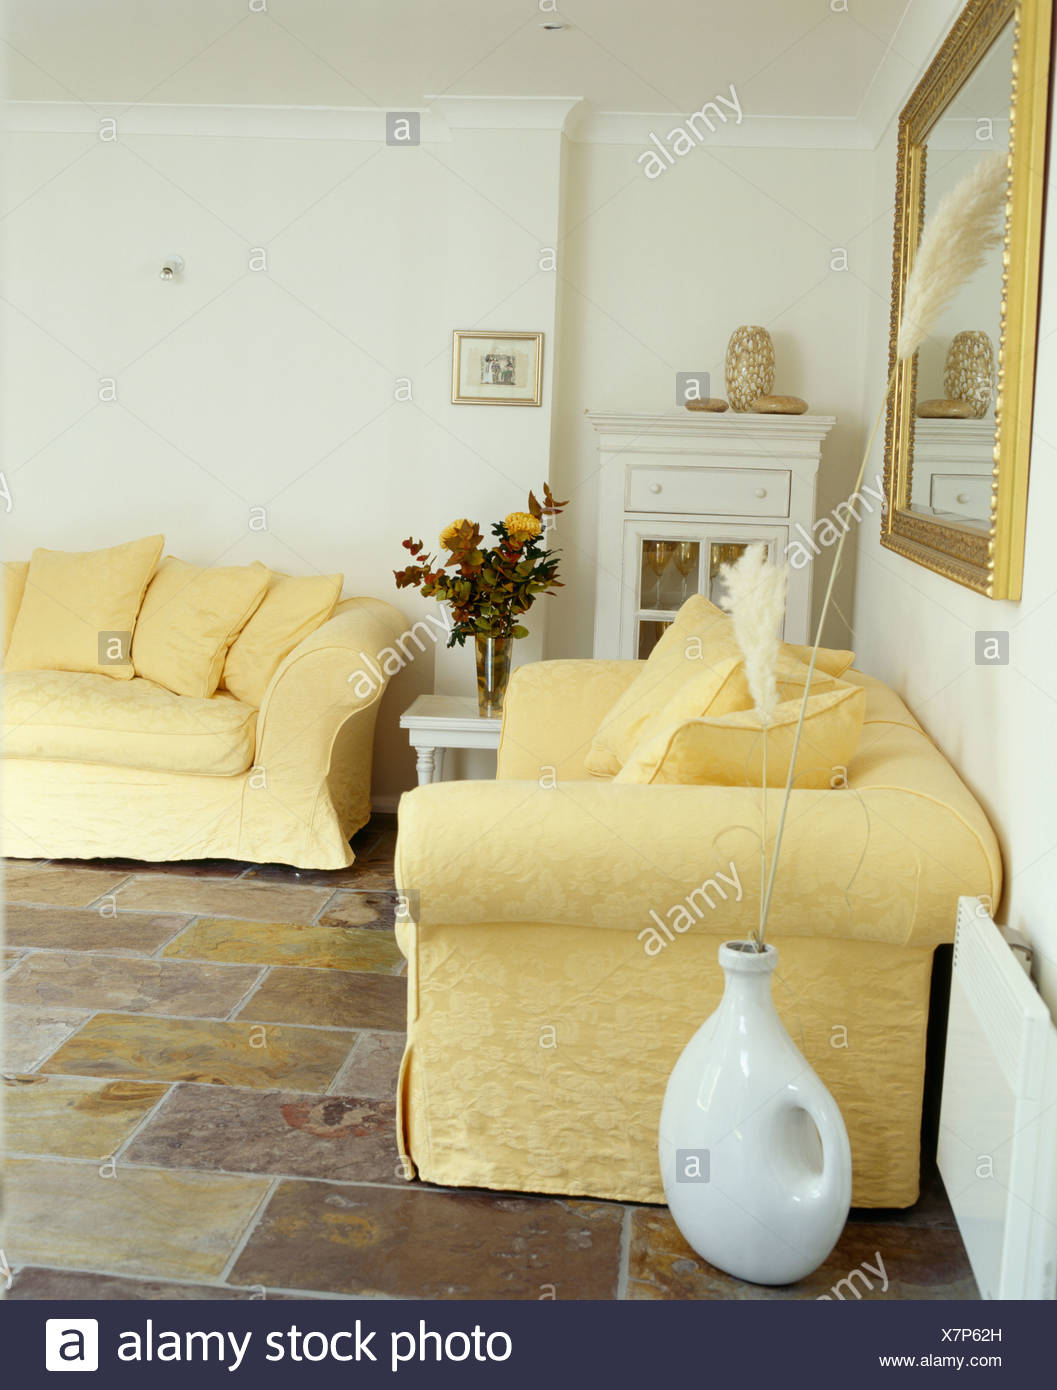 Pale yellow sofas sofas in white living room with slate floor tiles ...